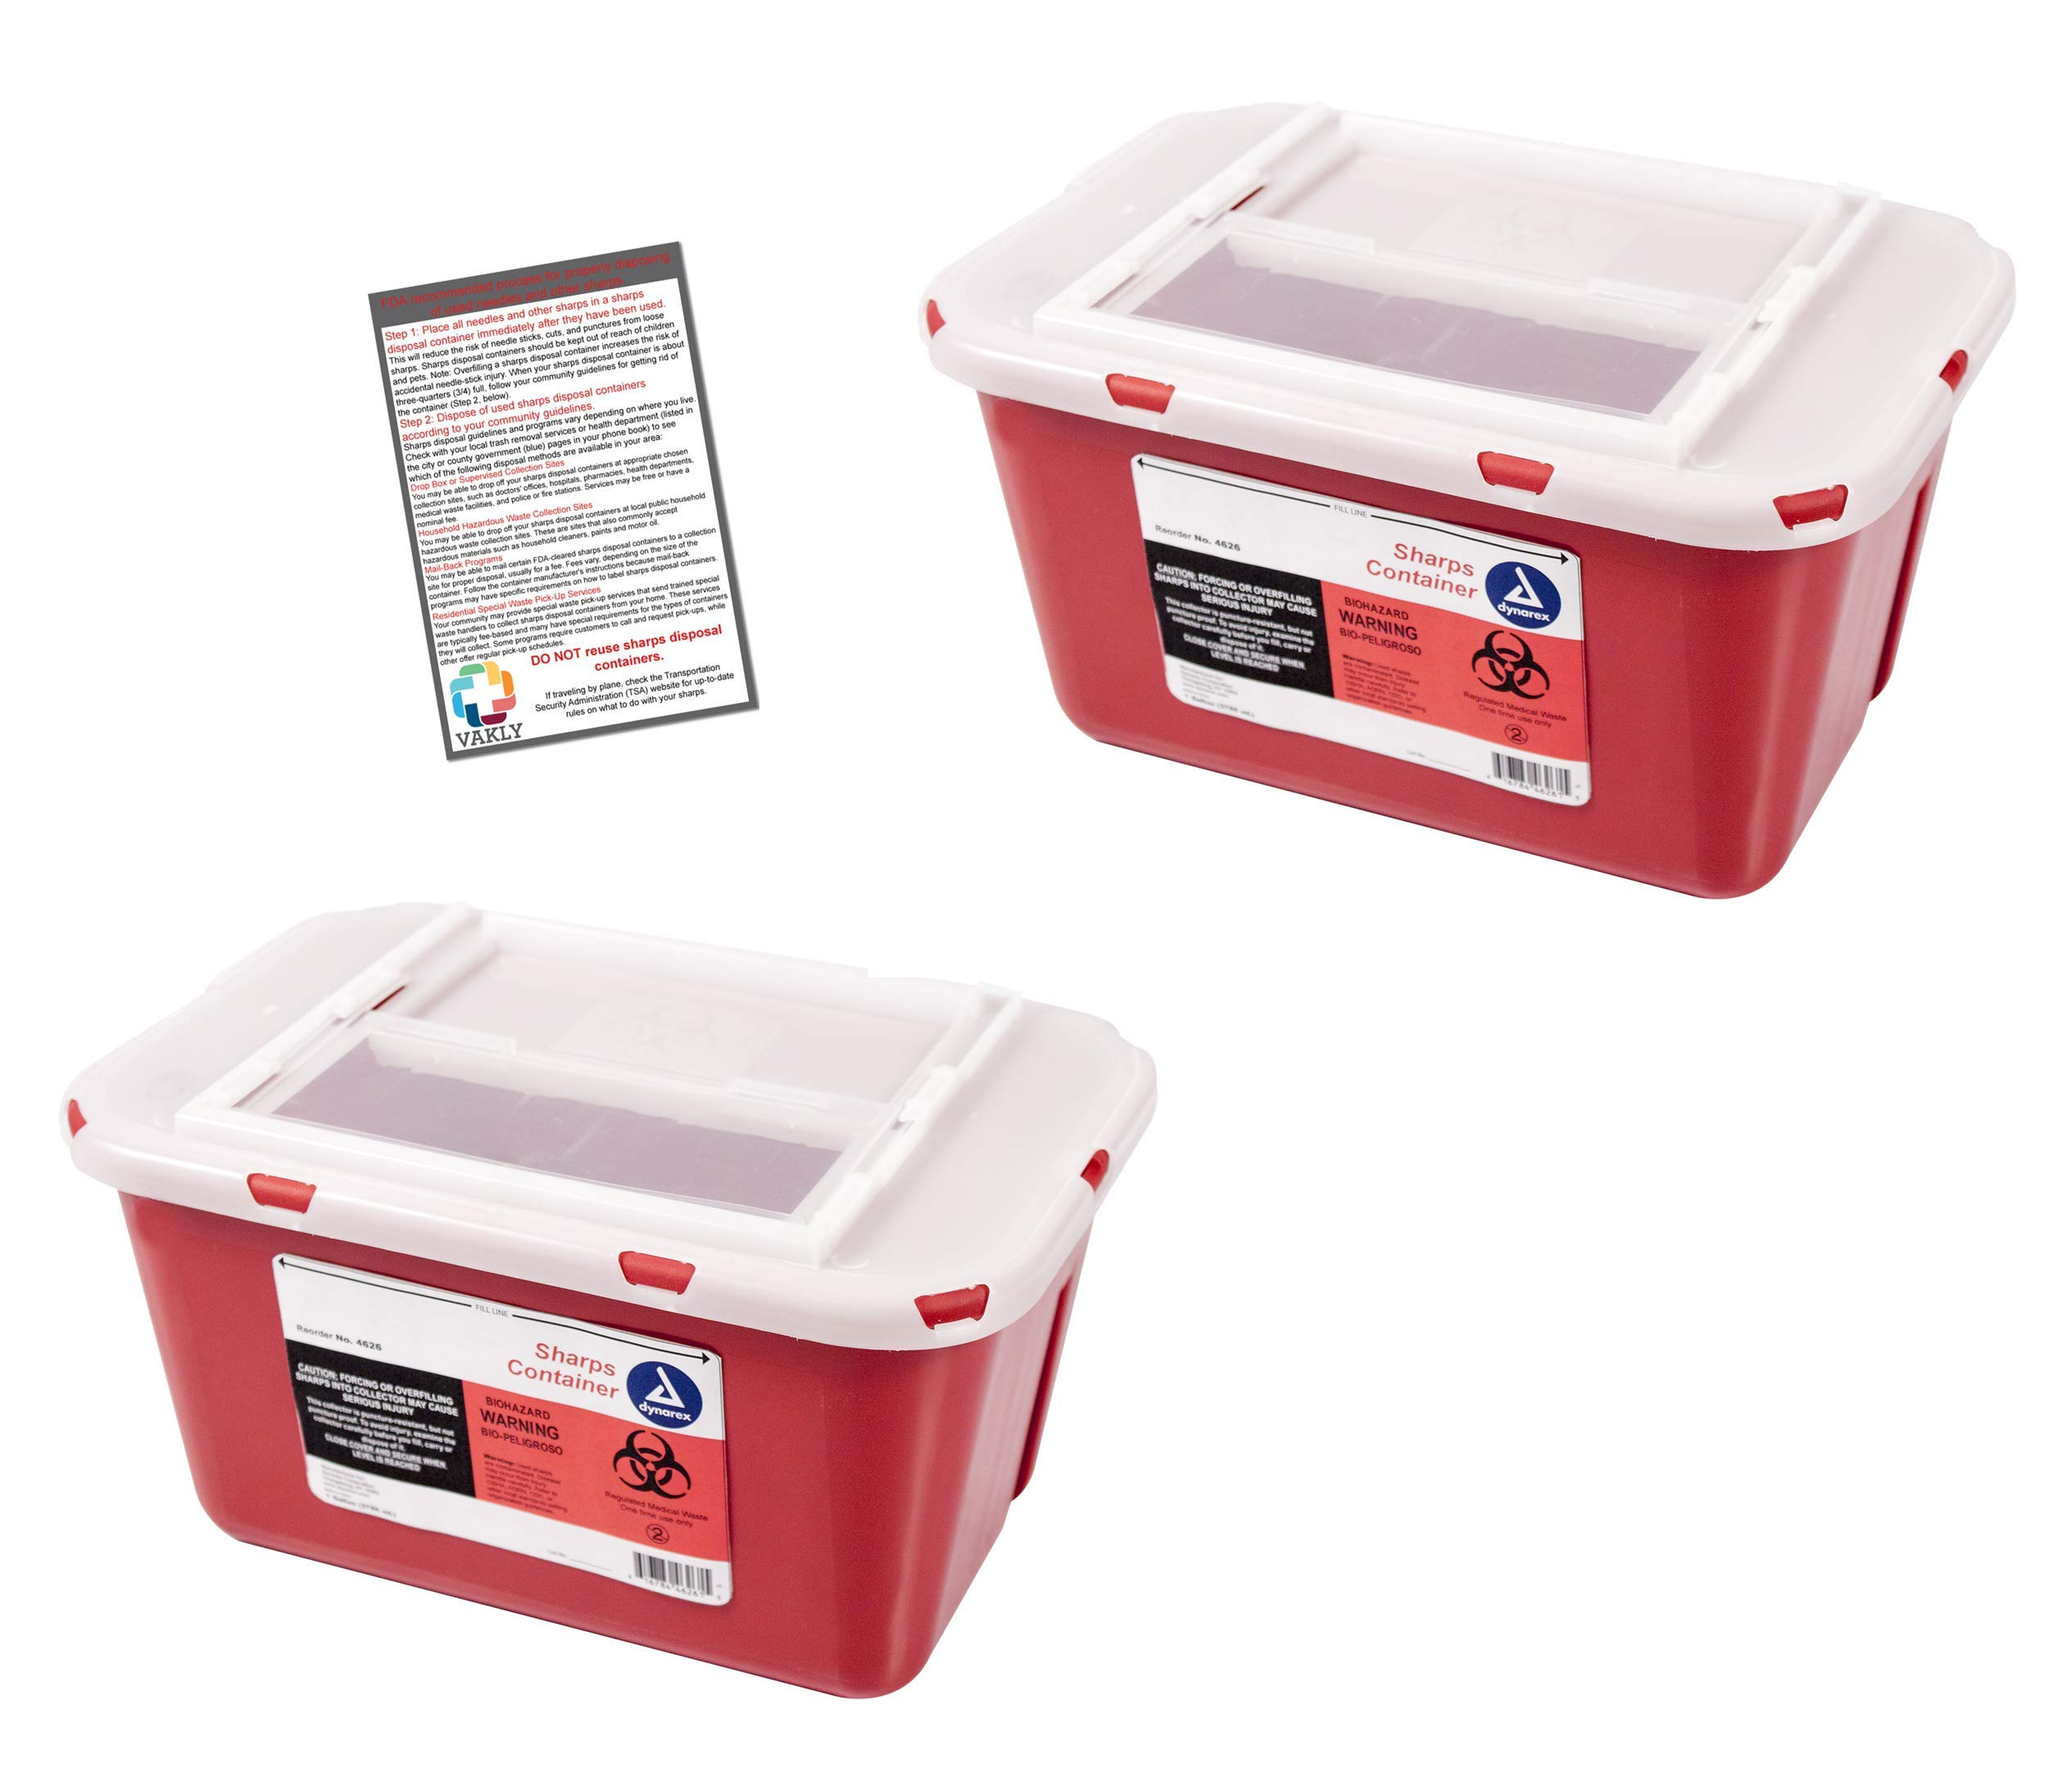 Sharps Container 1 Gallon - Plus Vakly Biohazard Disposal Guide (2 Pack)